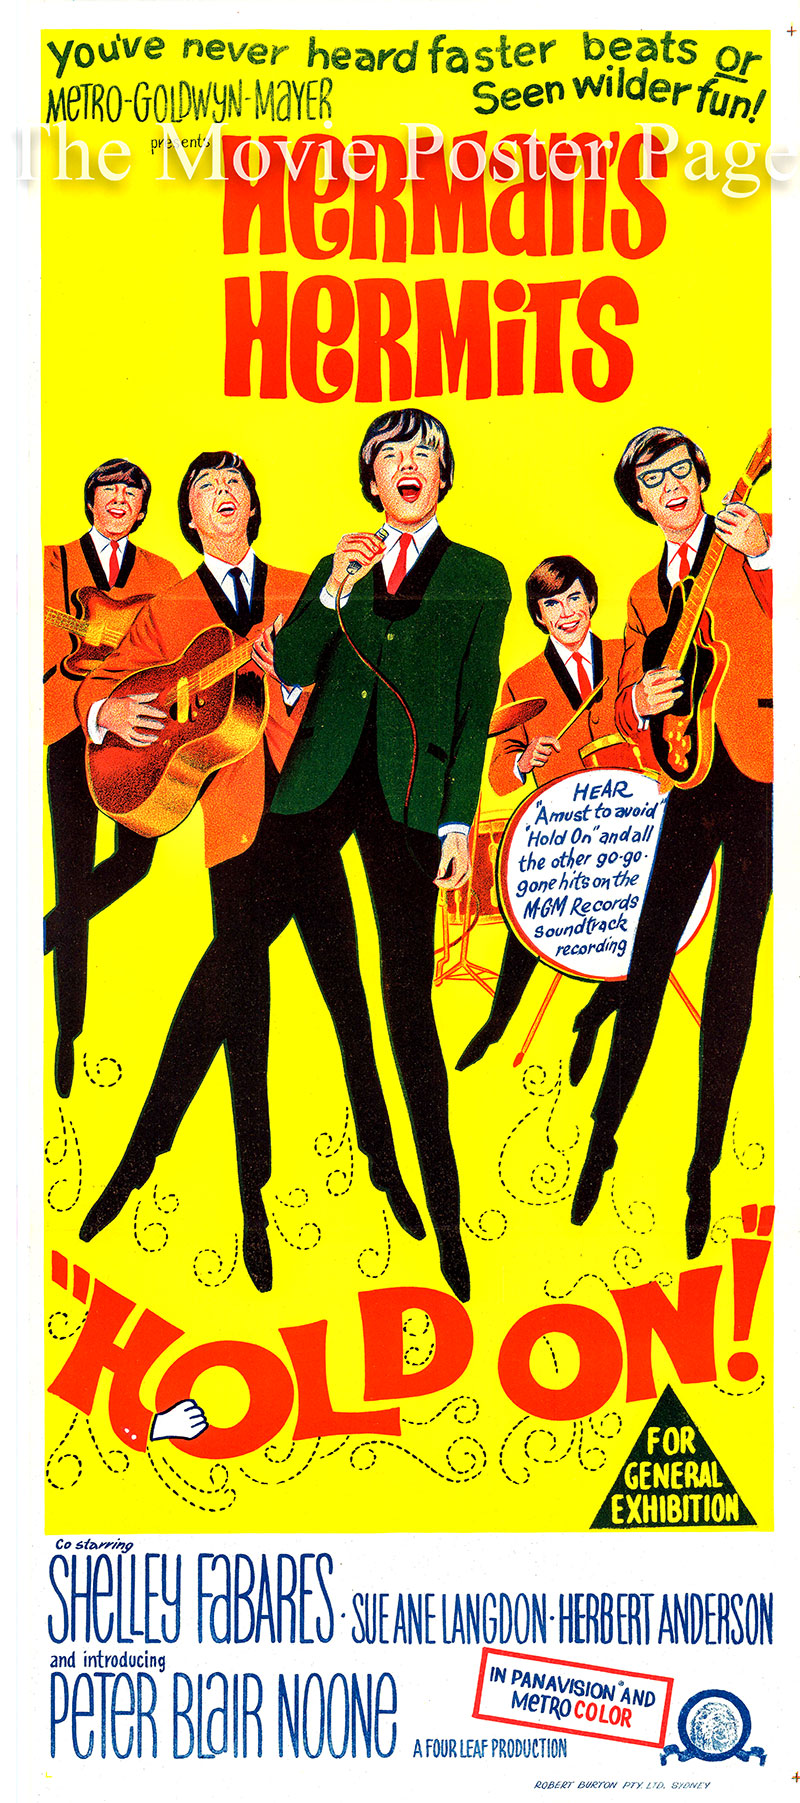 This is an Australian day bill poster for the 1966 Arthur Lubin film <i>Hold on</i> starring Herman's Hermits as themselves.